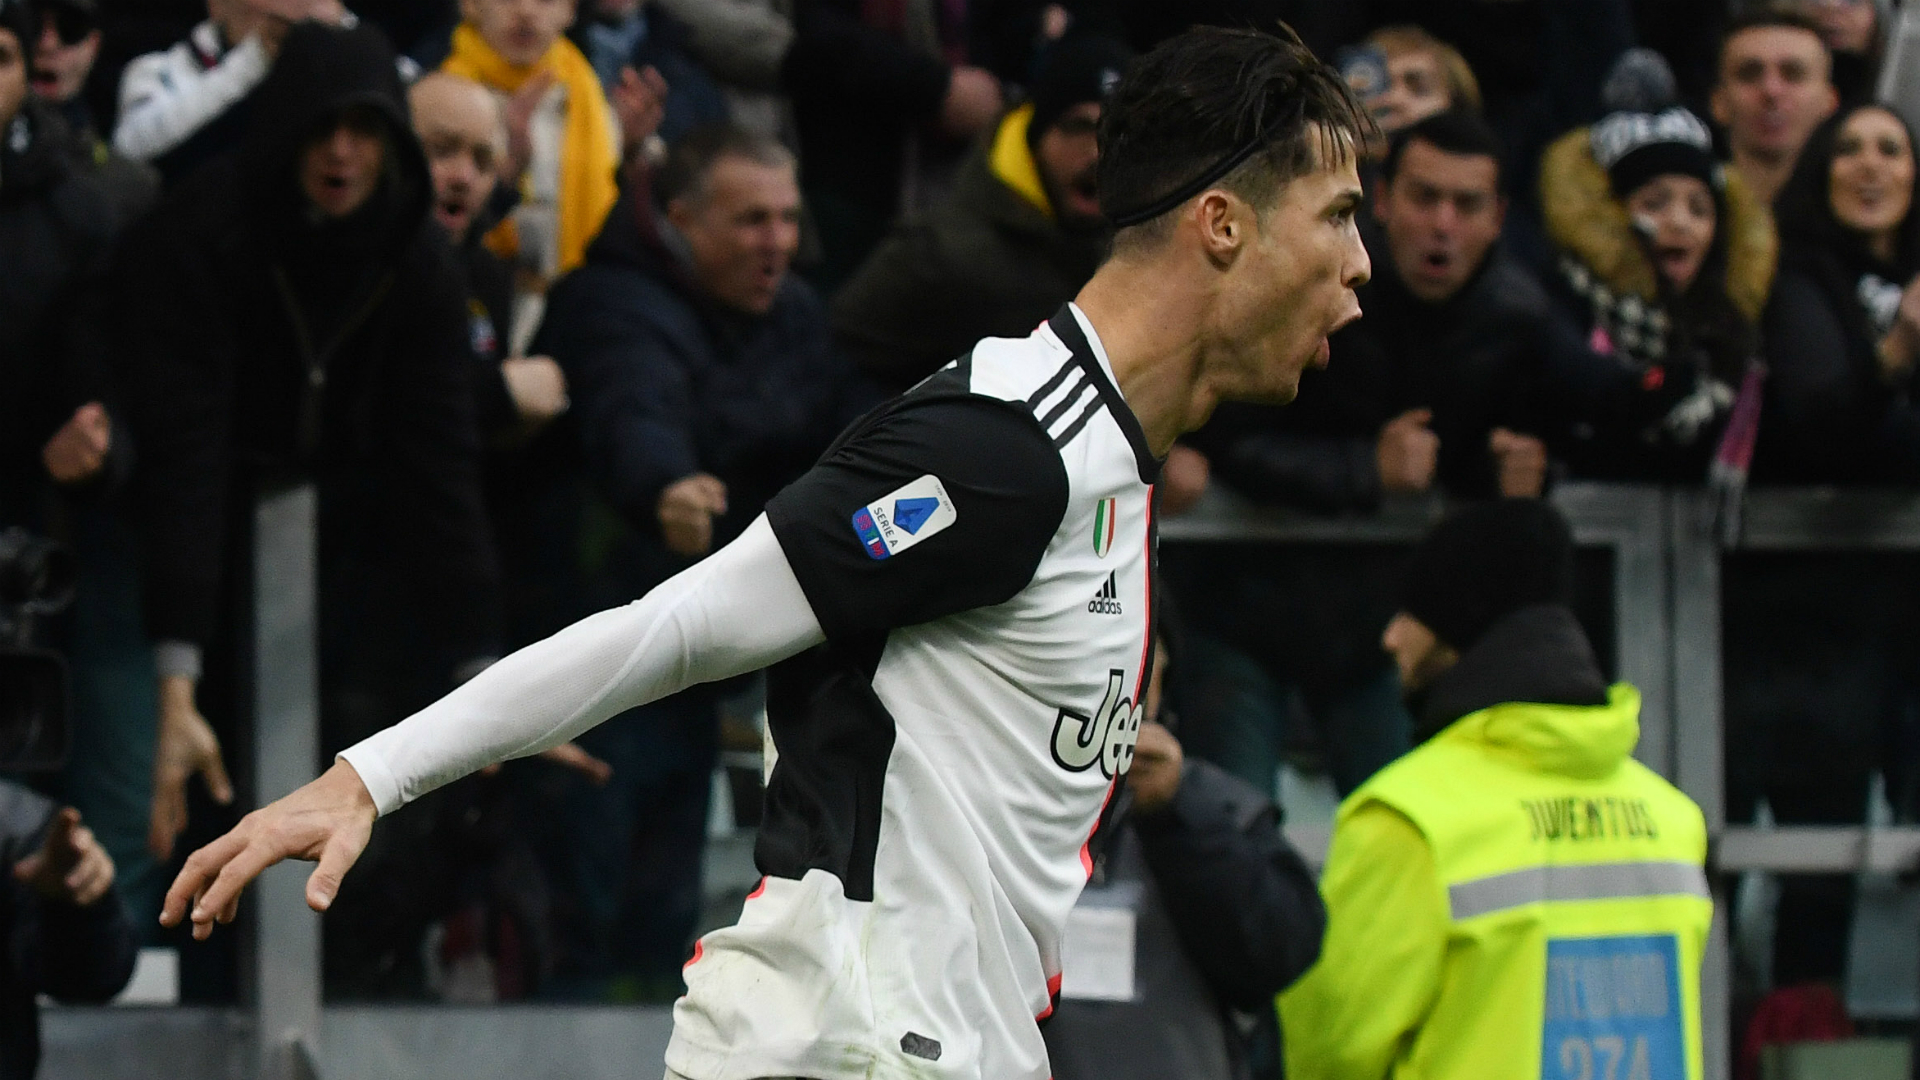 Cristiano Ronaldo scores superhuman header for Serie A leaders Juventus